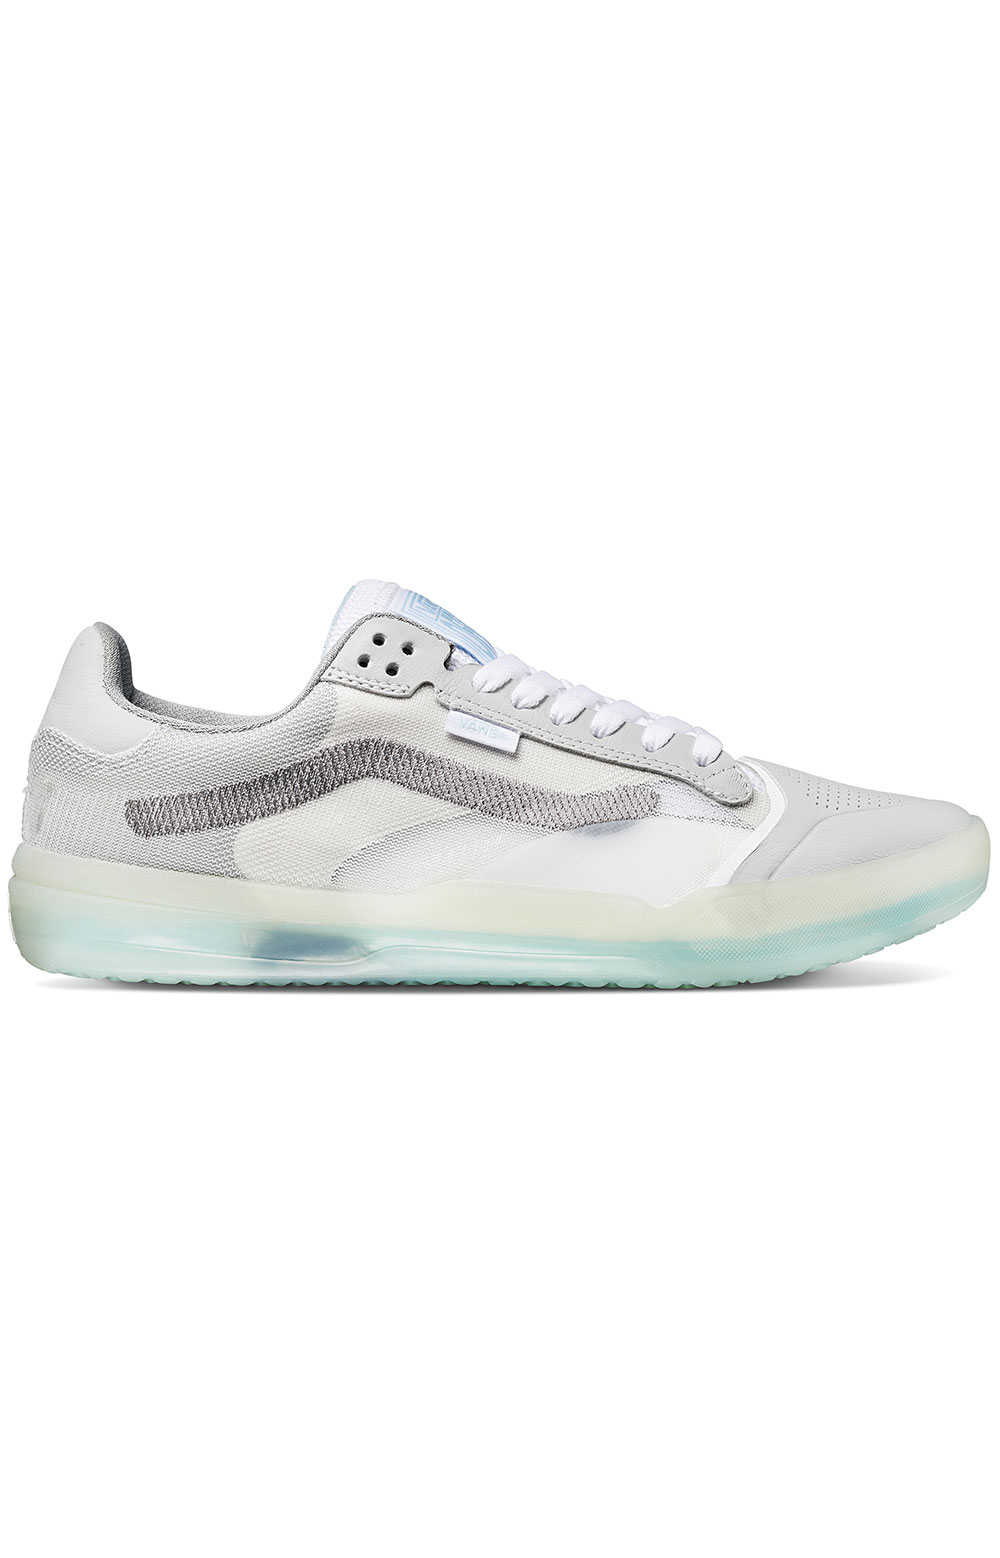 (DY76KL) Evdnt Ultimate Waffle Shoes - Grey/Multi 4